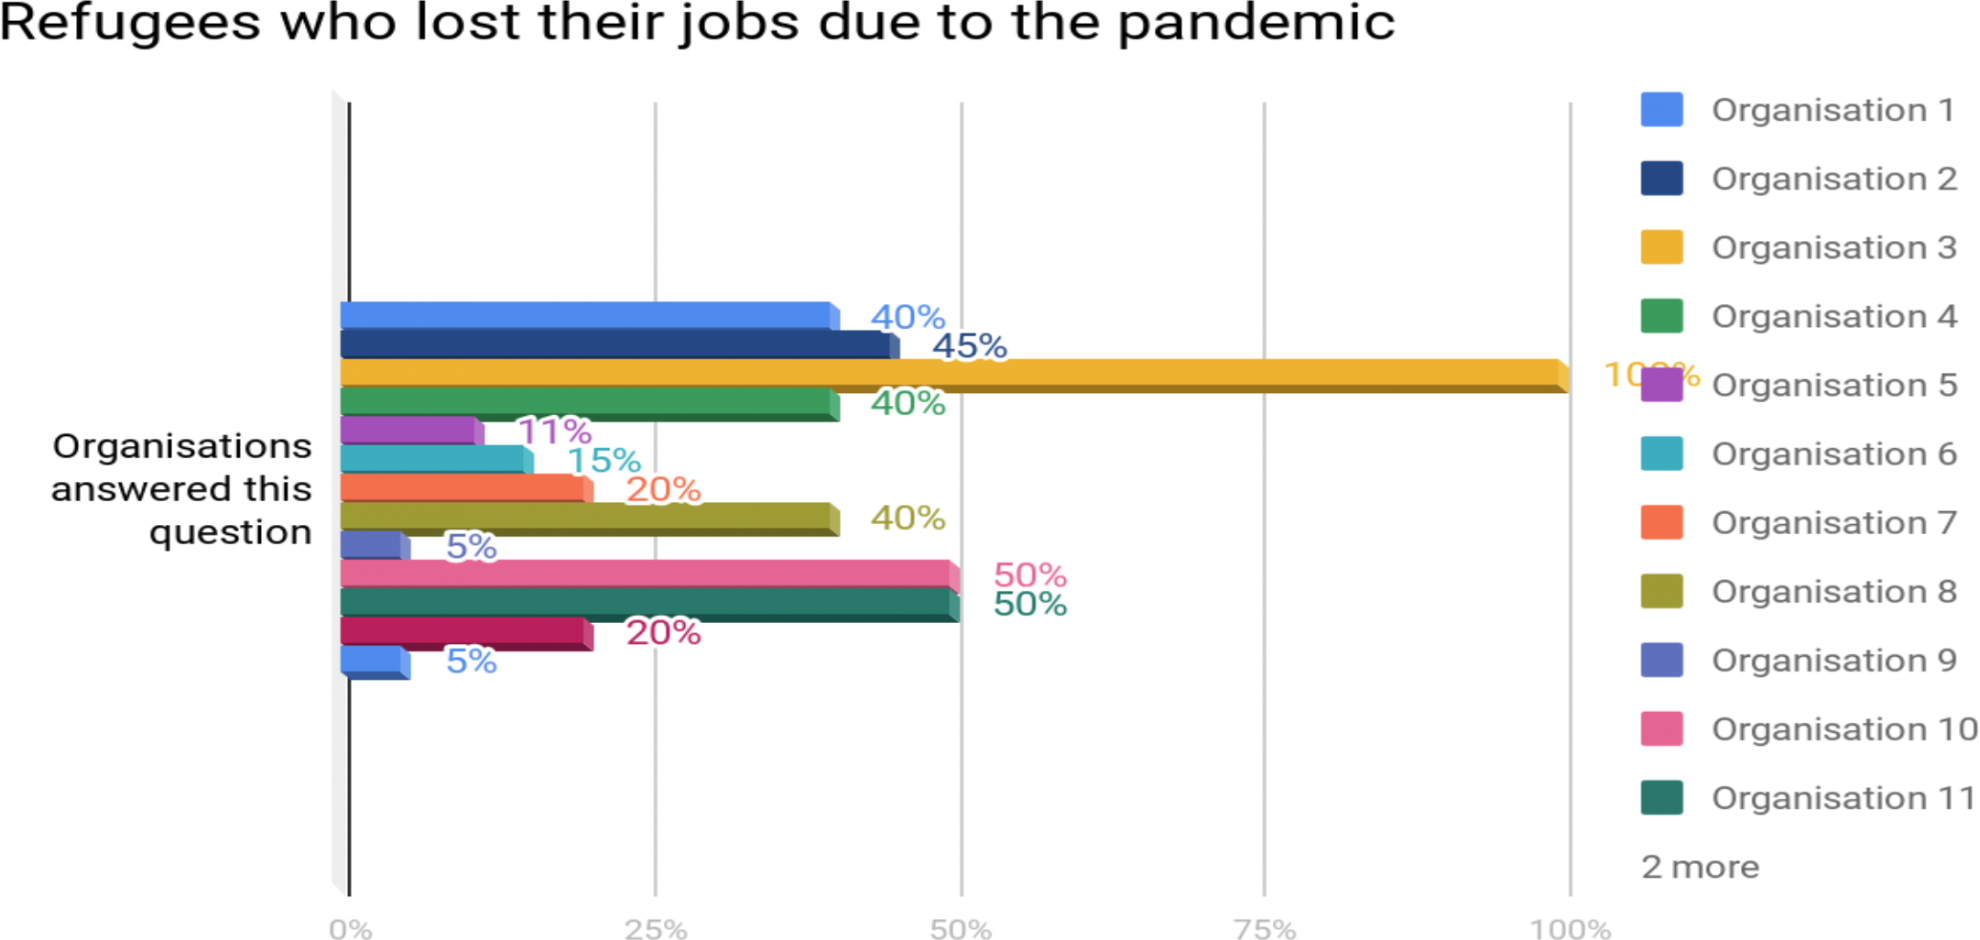 To the best of your knowledge, what percentage of your participants have lost jobs during the coronavirus (diagram)